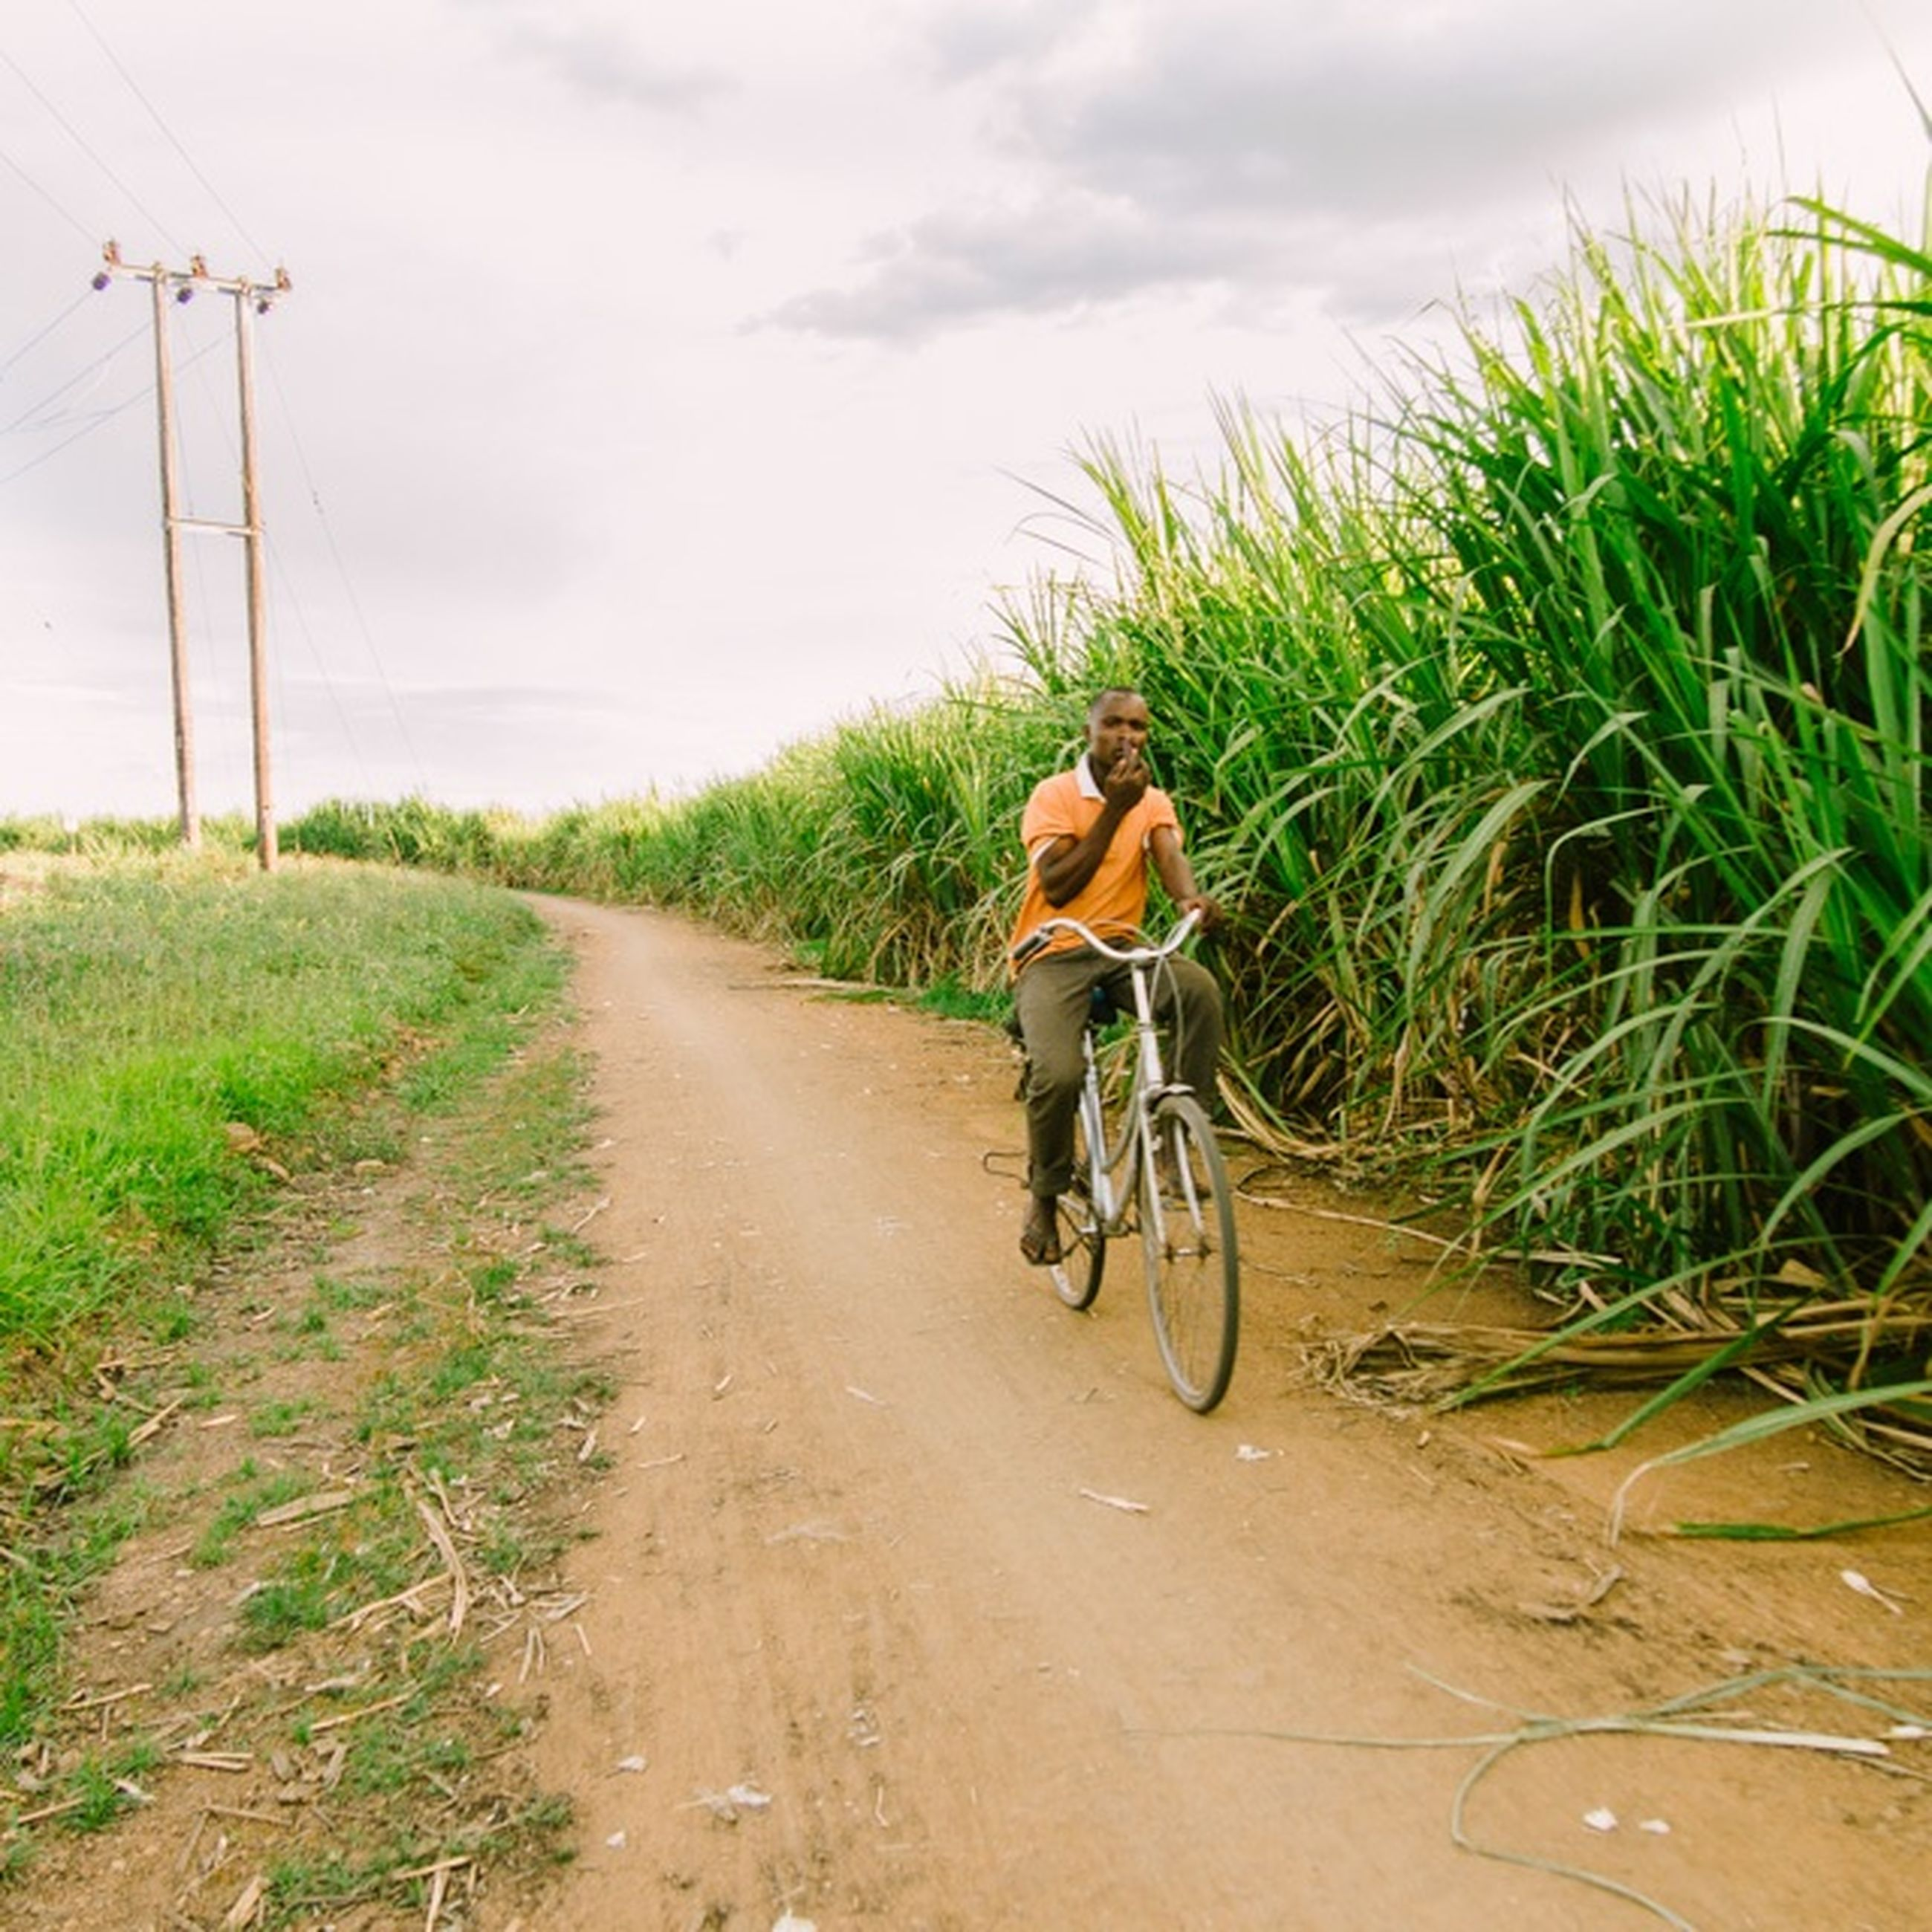 transportation, full length, riding, bicycle, the way forward, lifestyles, mode of transport, rear view, land vehicle, dirt road, leisure activity, men, road, cycling, sky, on the move, casual clothing, diminishing perspective